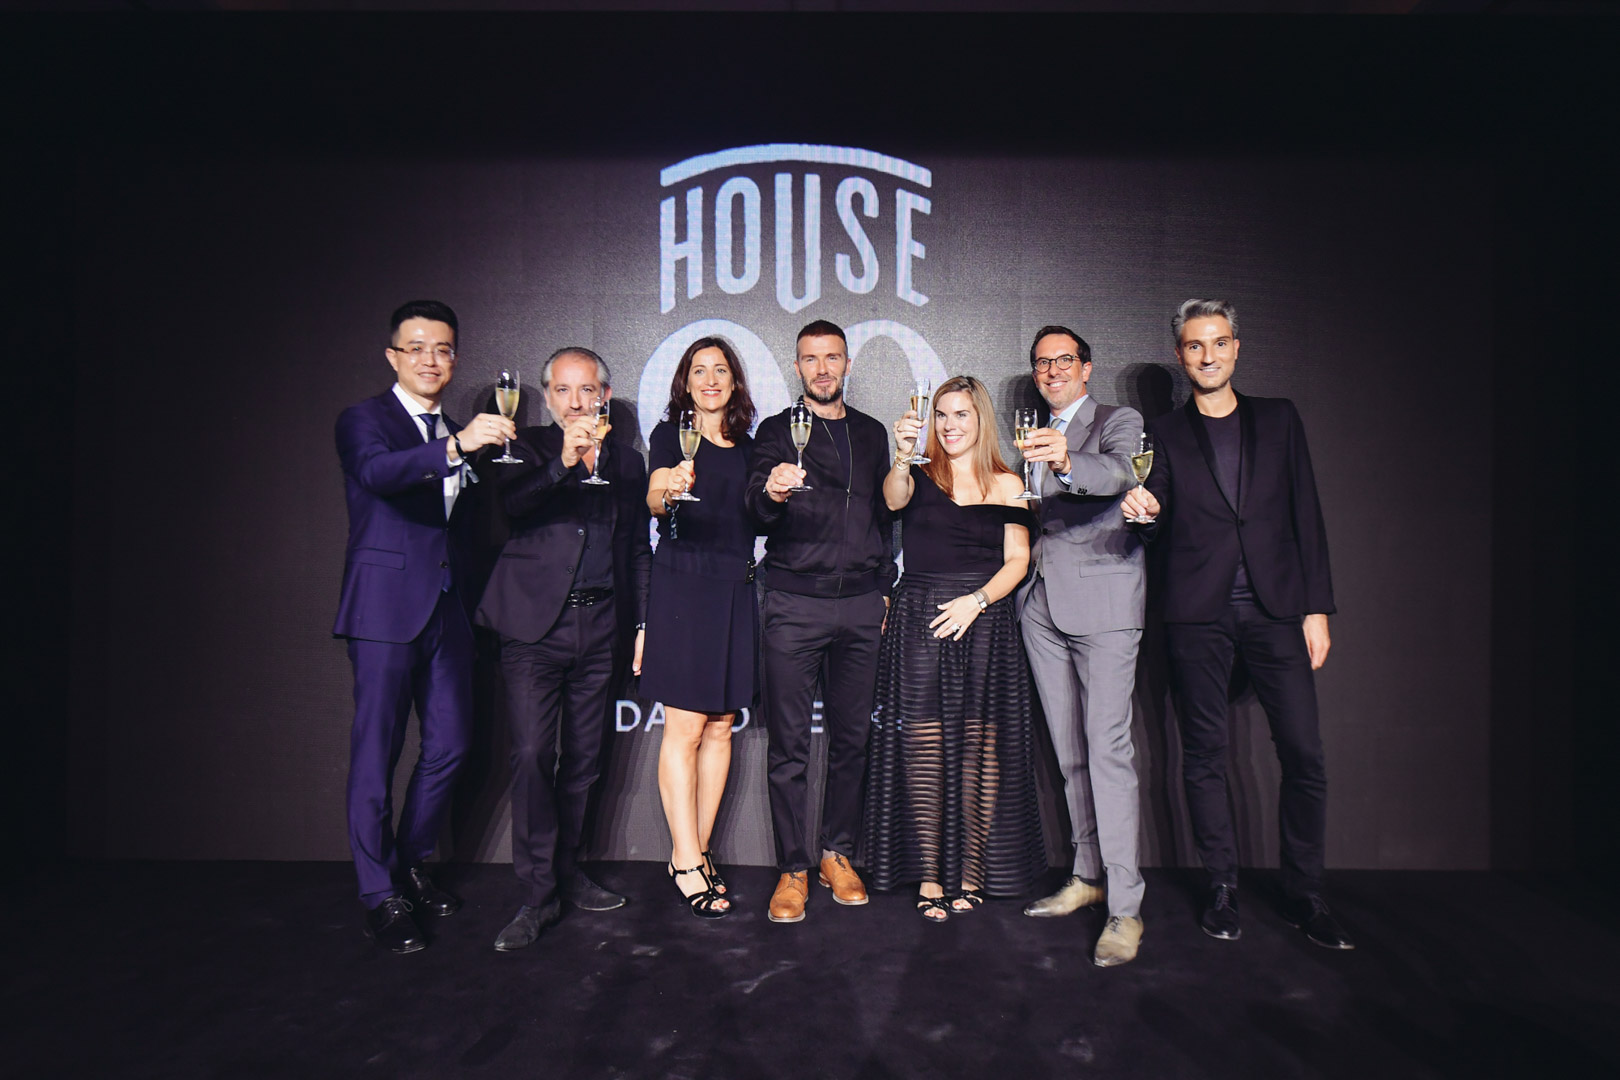 English Chinese interpreting service for House 99 product launch - group photo with Beckham